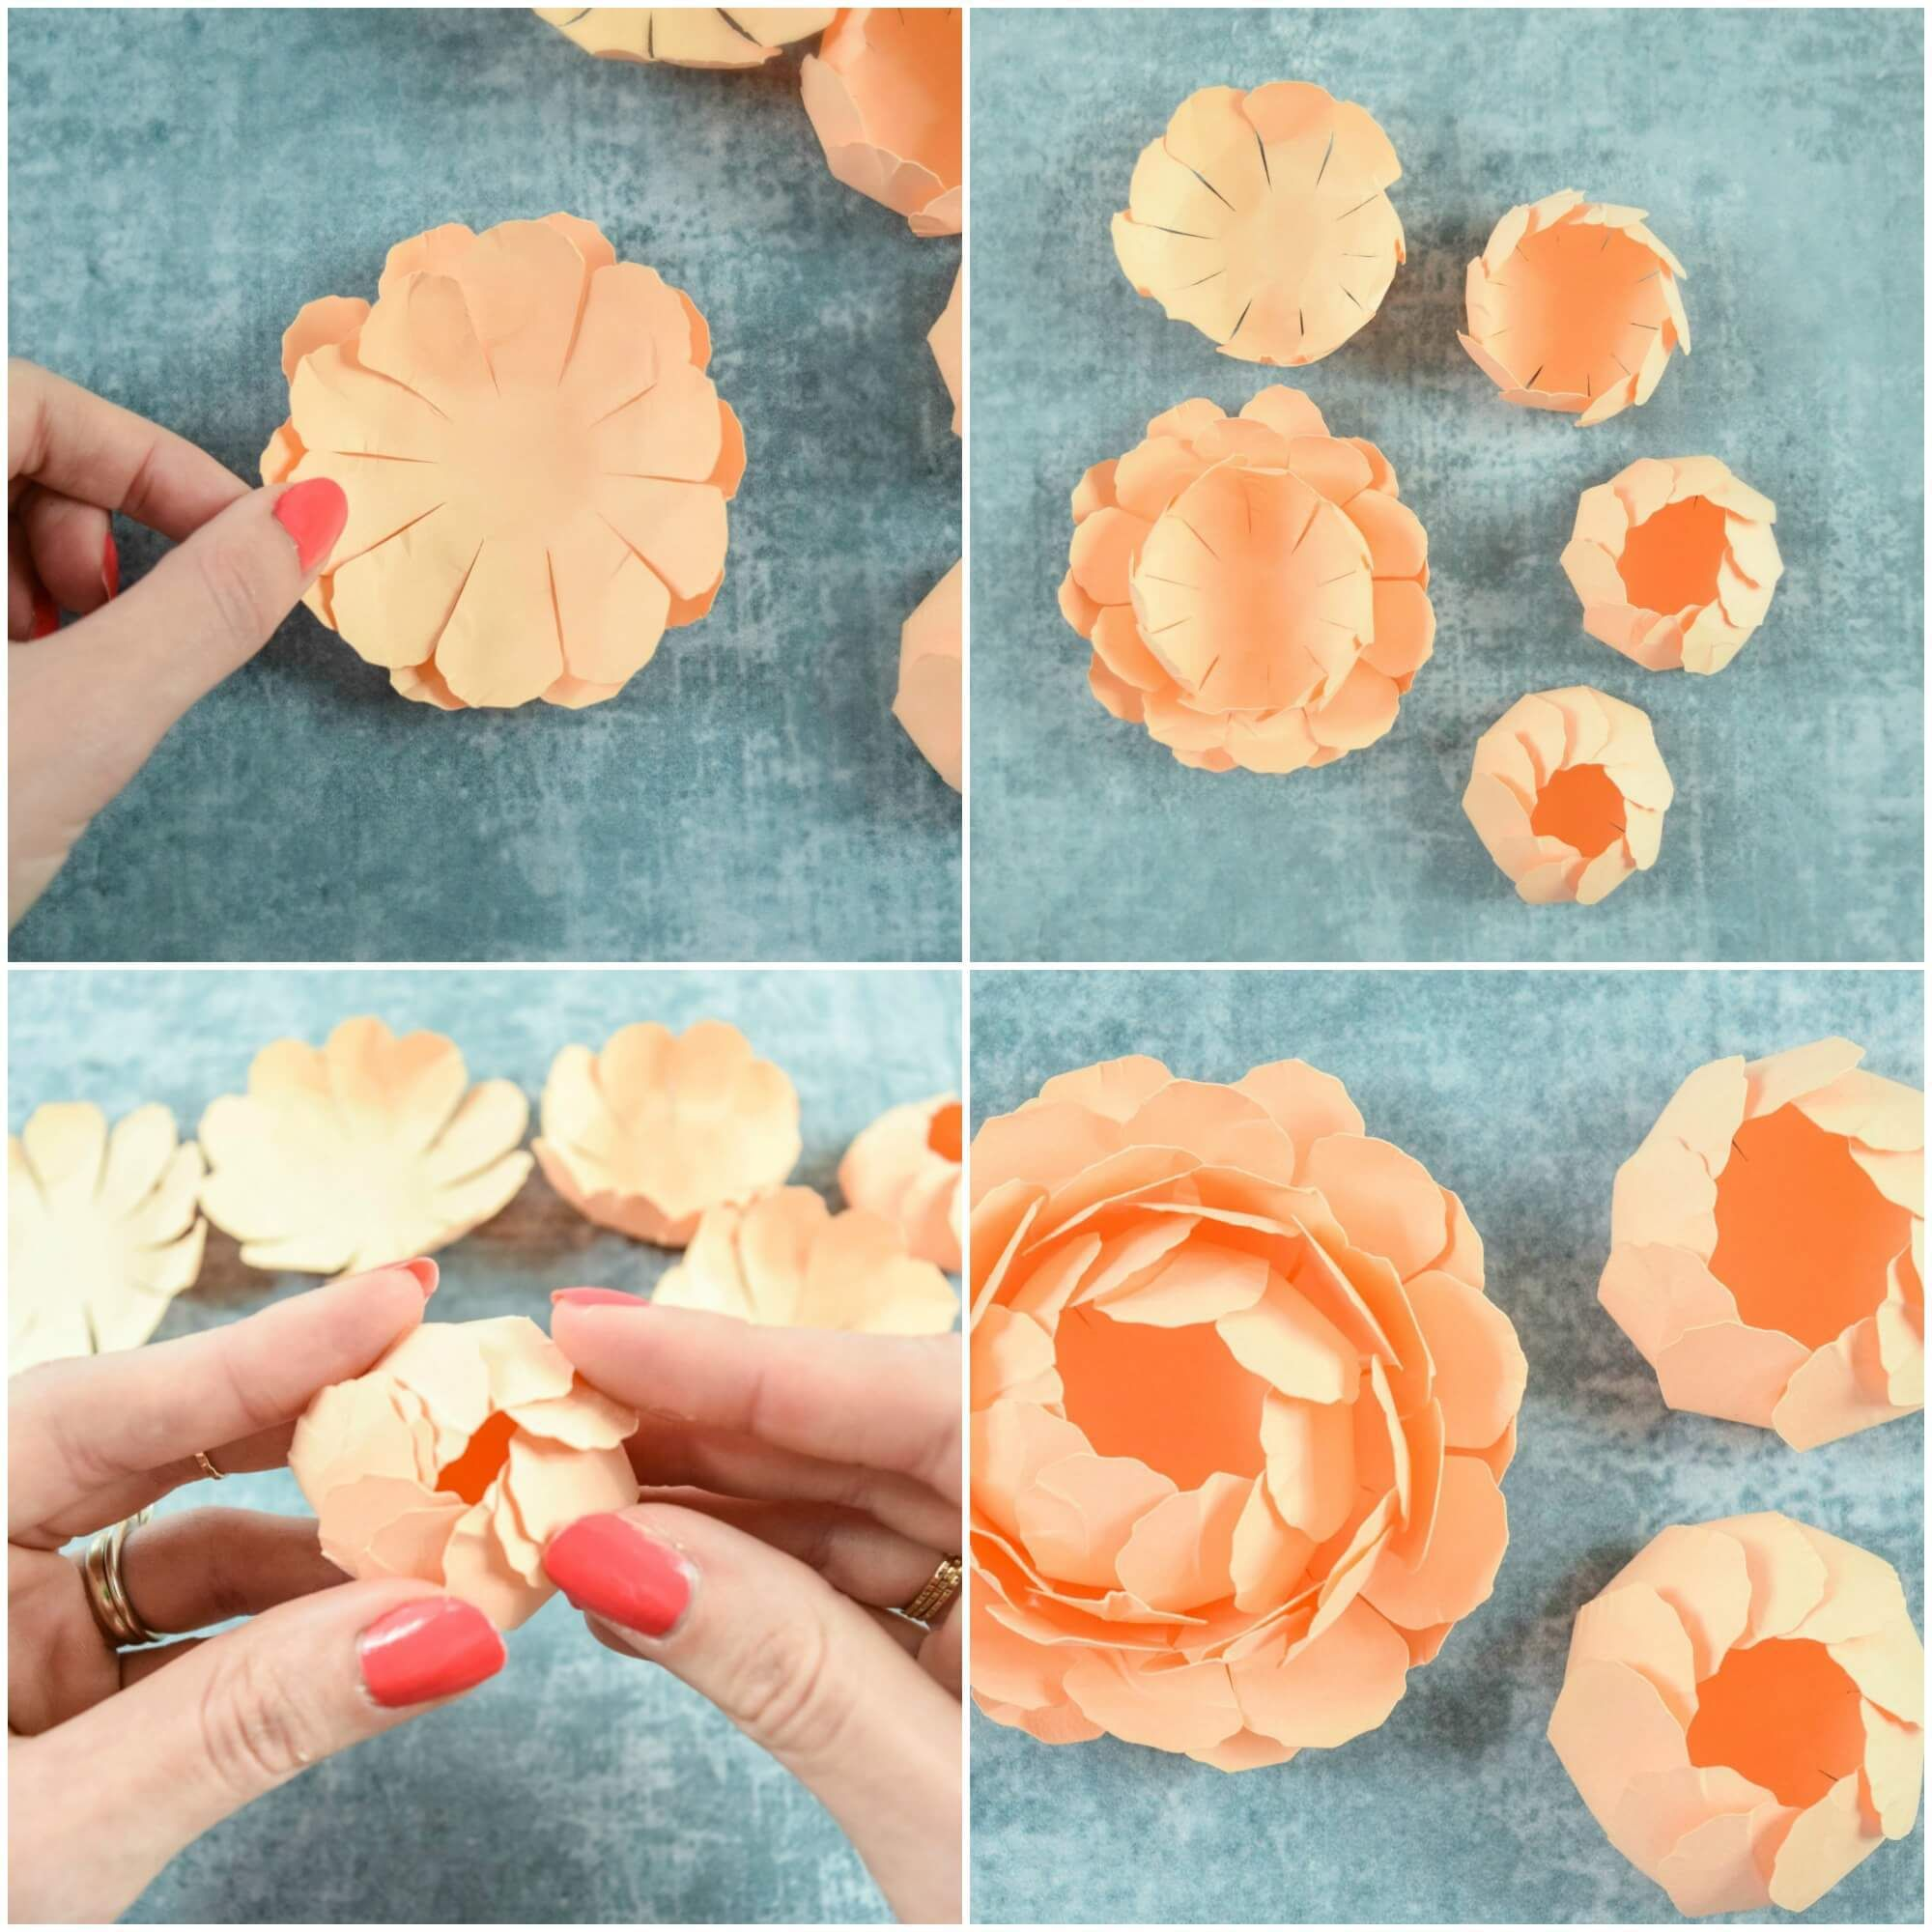 Peony Paper Flower Template: Step by Step Easy Paper Flower Tutorial